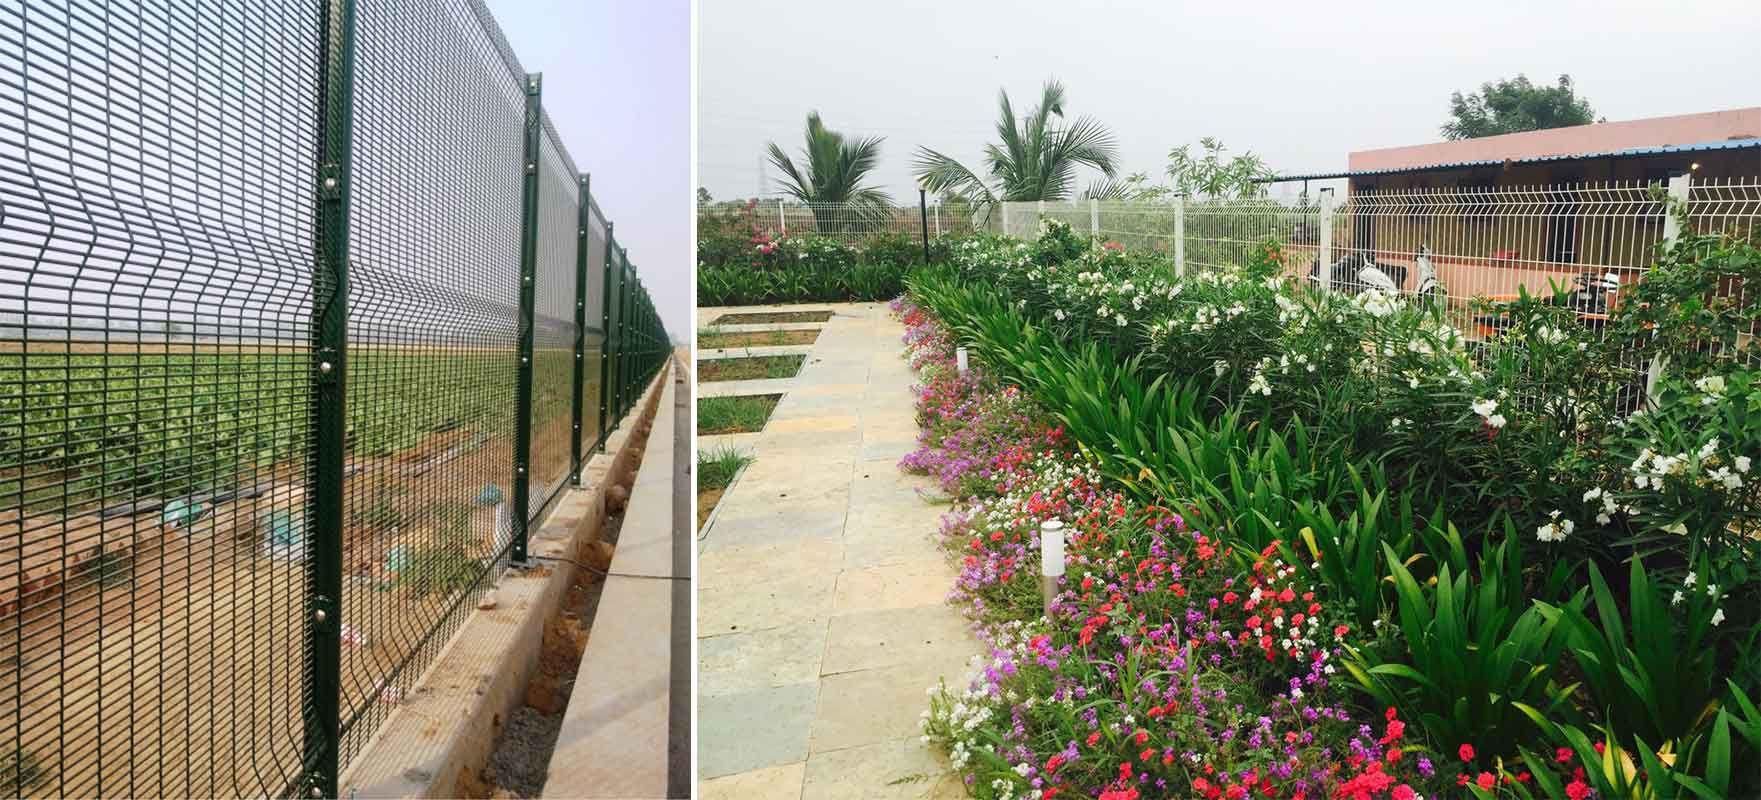 Fencing types of fences for exterior purposes